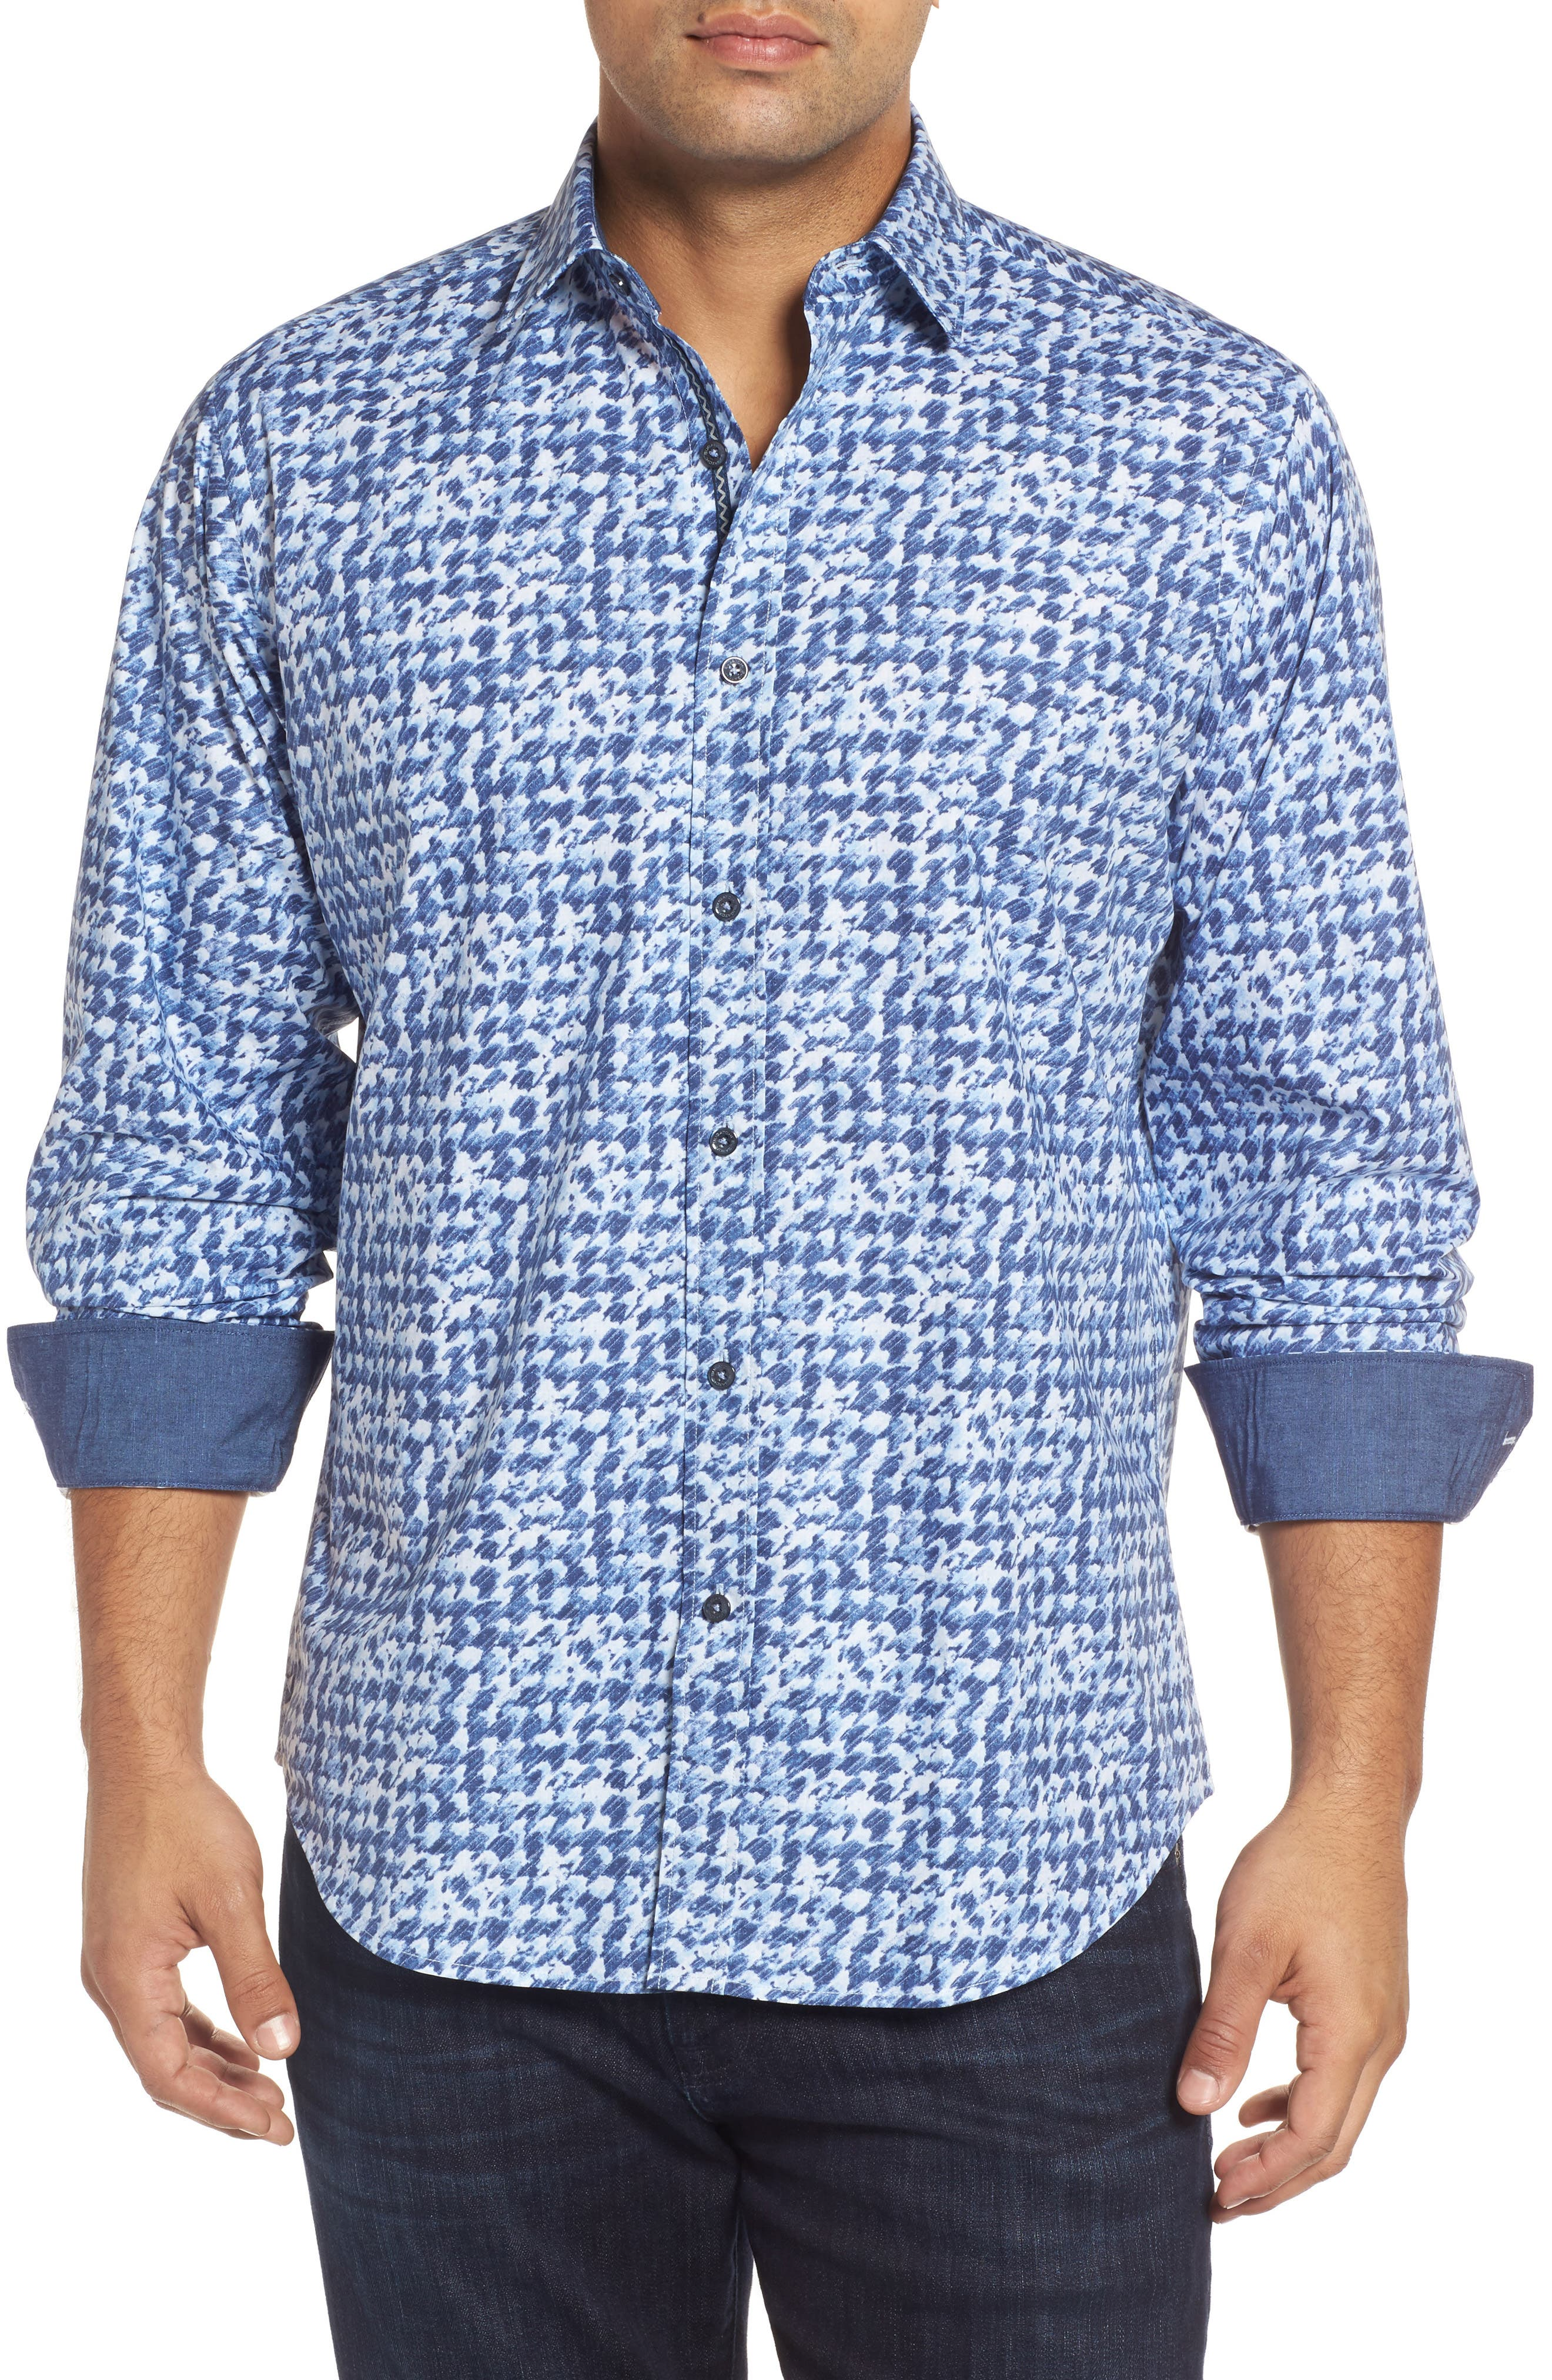 Alternate Image 1 Selected - Bugatchi Classic Fit Patterned Sport Shirt